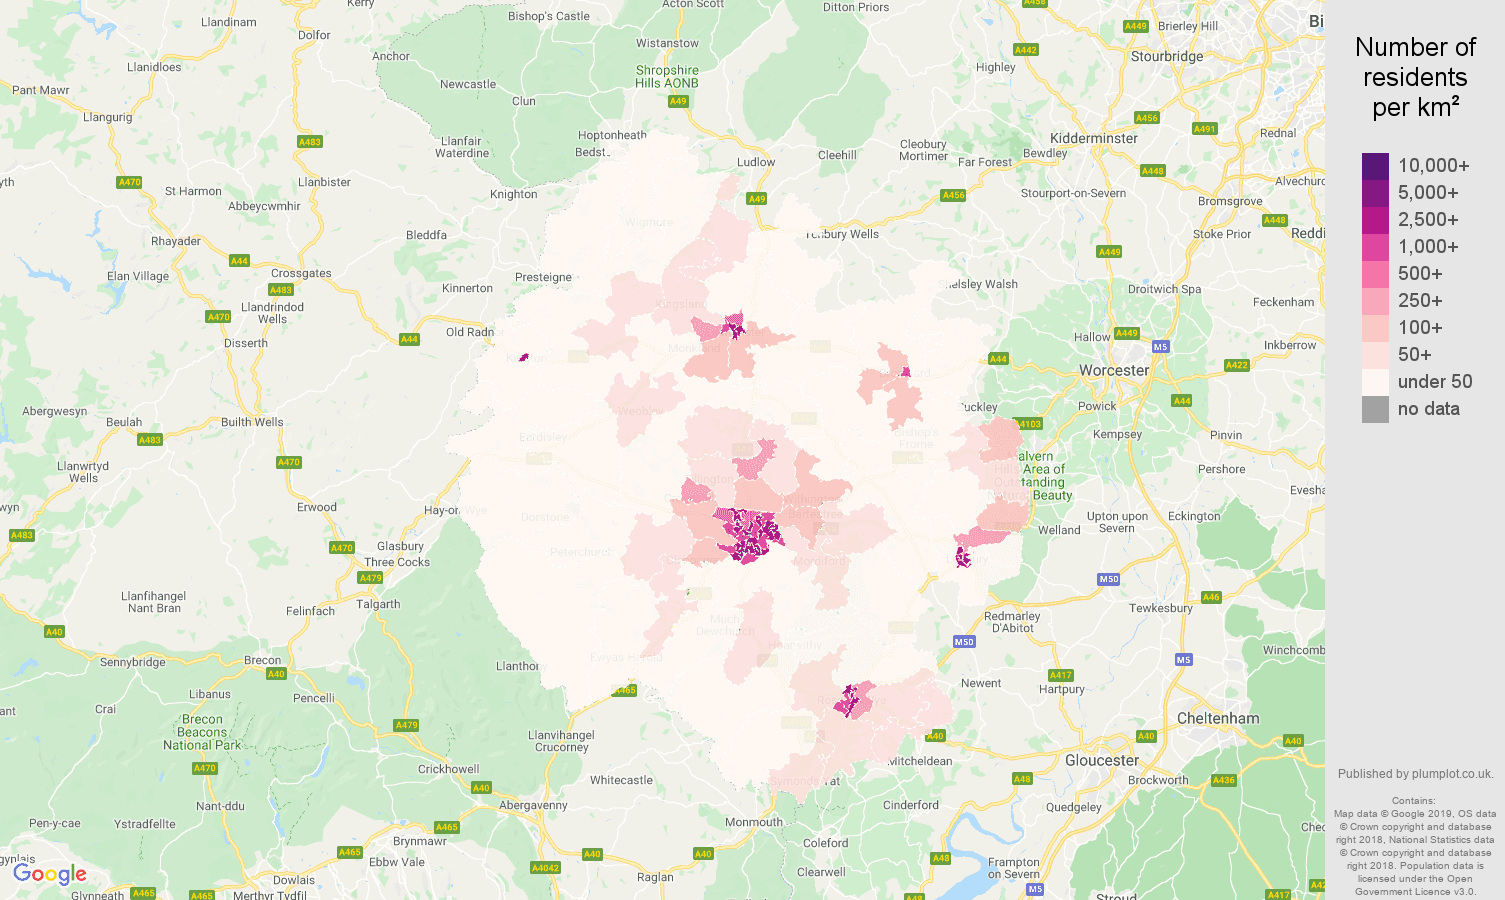 Herefordshire population density map